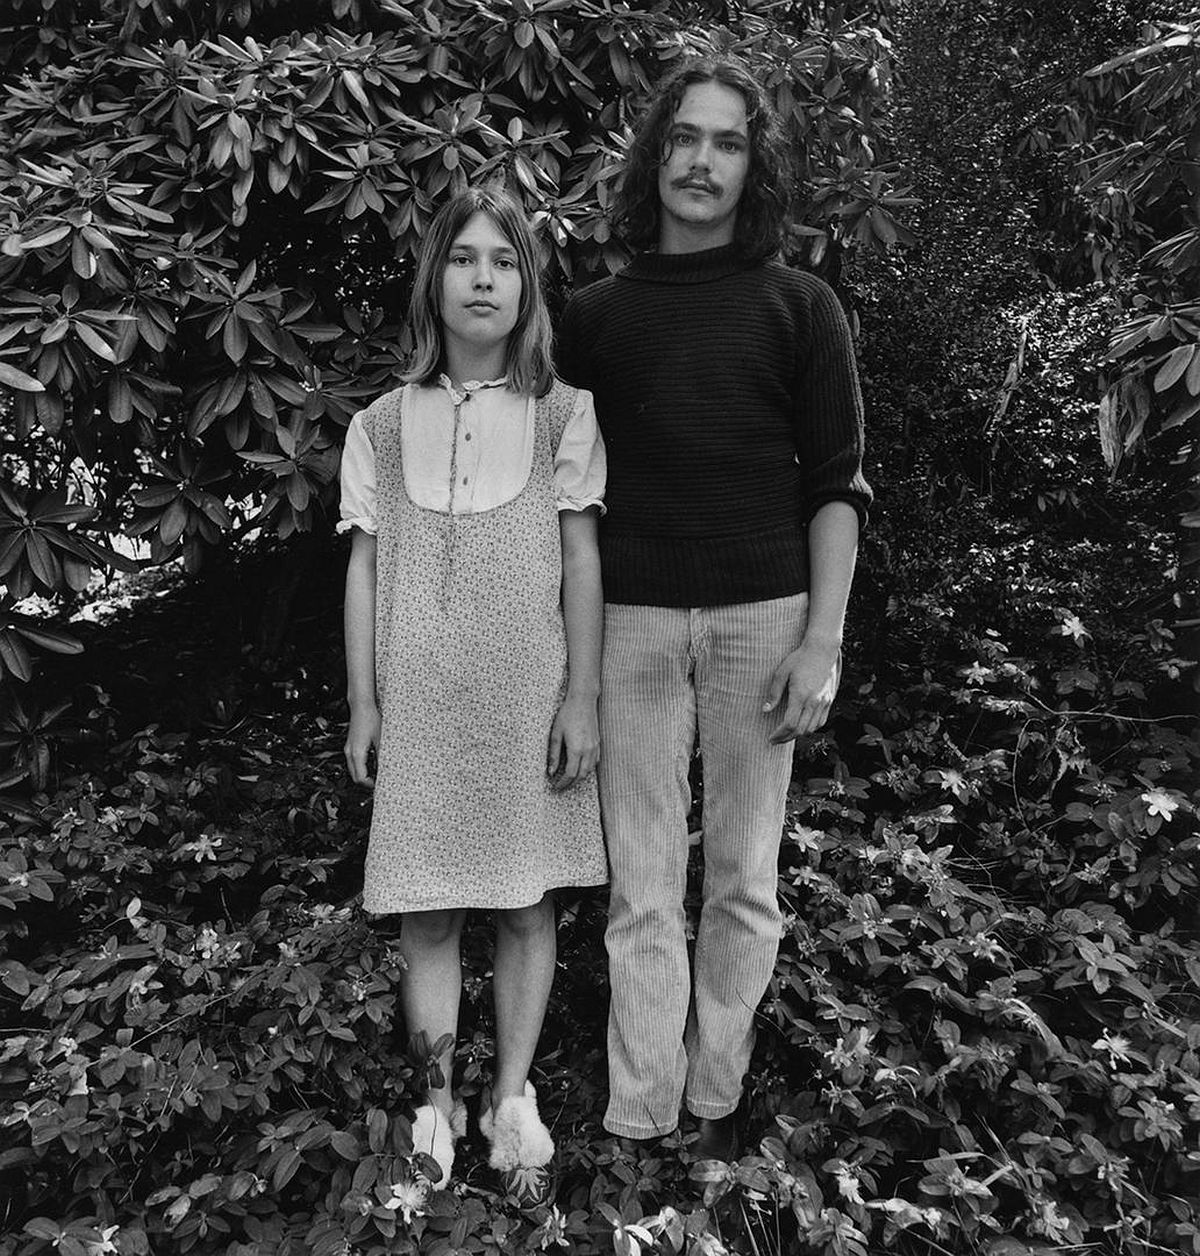 Couple in Park 1968